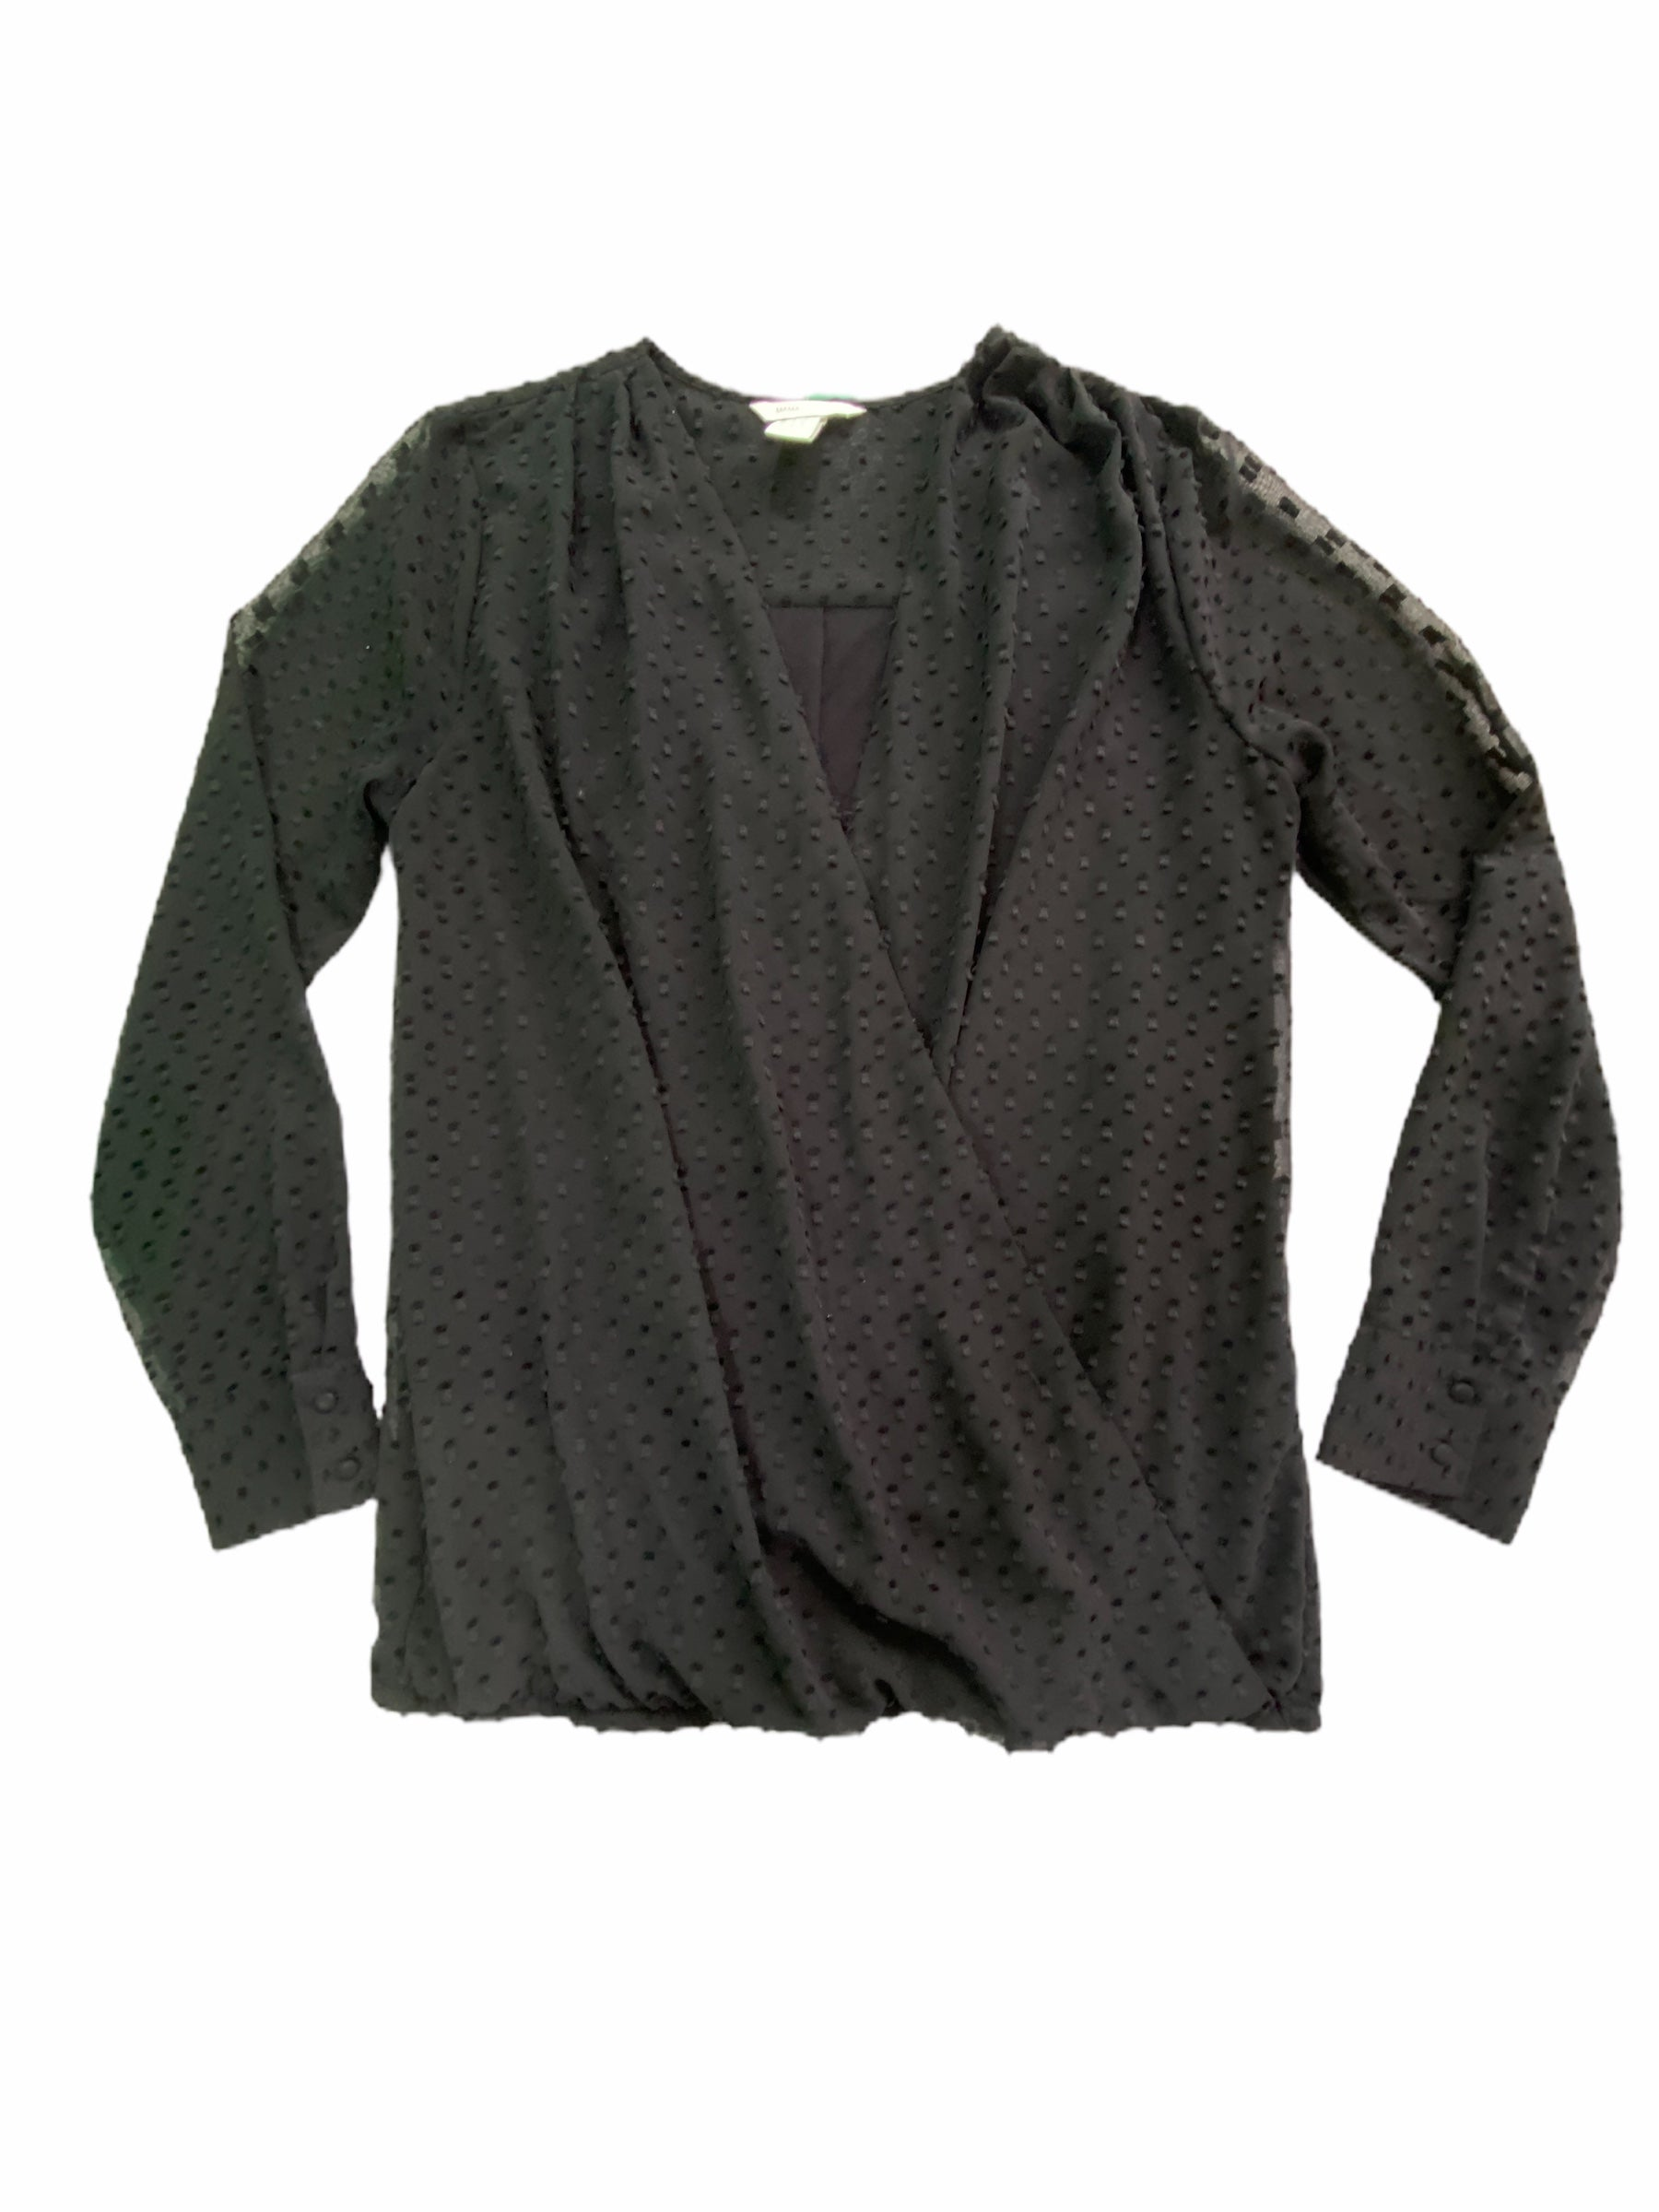 H & M Black Nursing Blouse (Maternity Small)